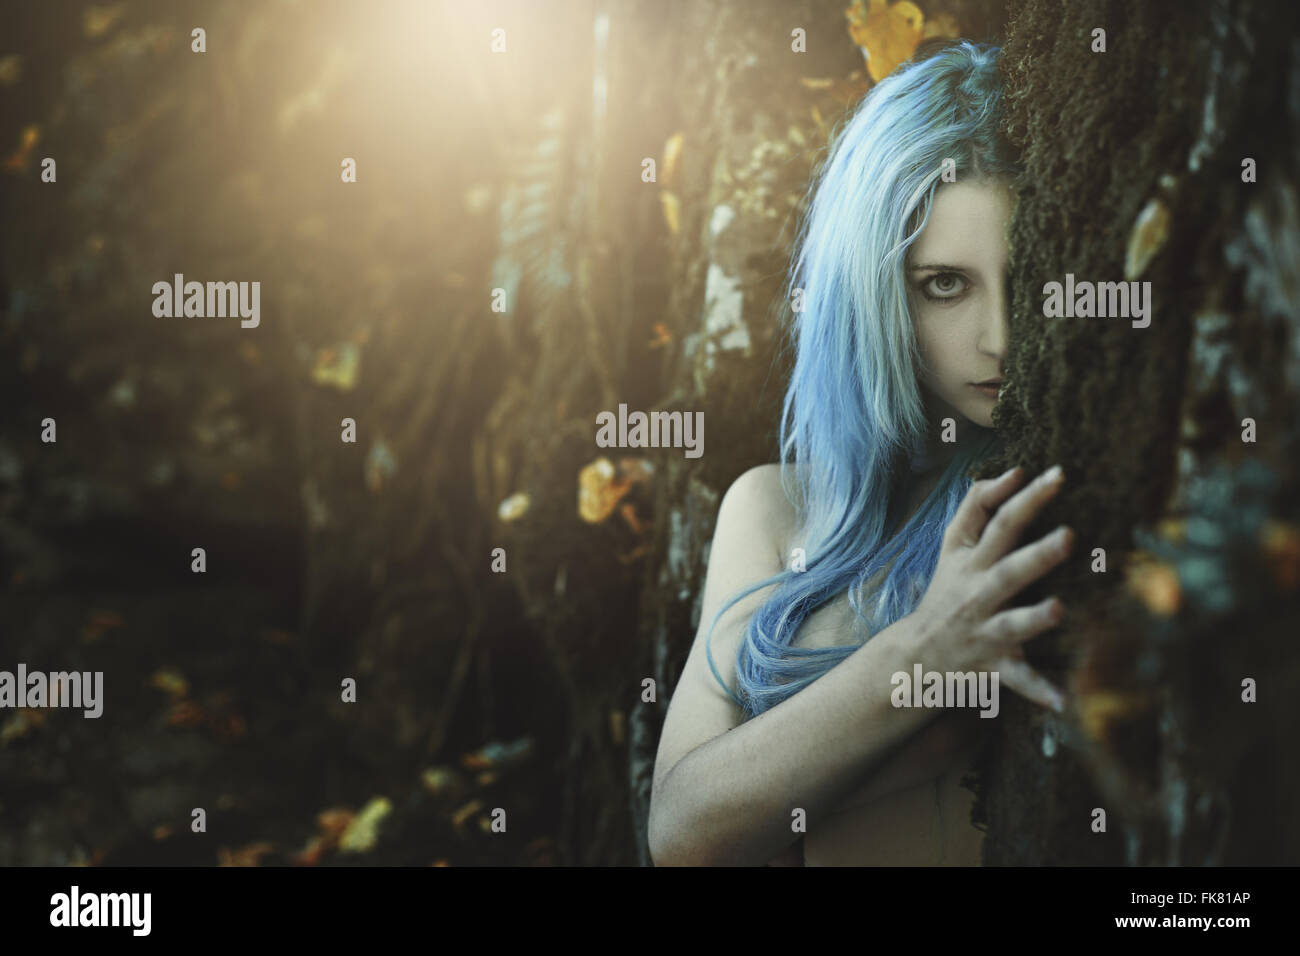 Dark child of the forest . Fantasy and myth - Stock Image